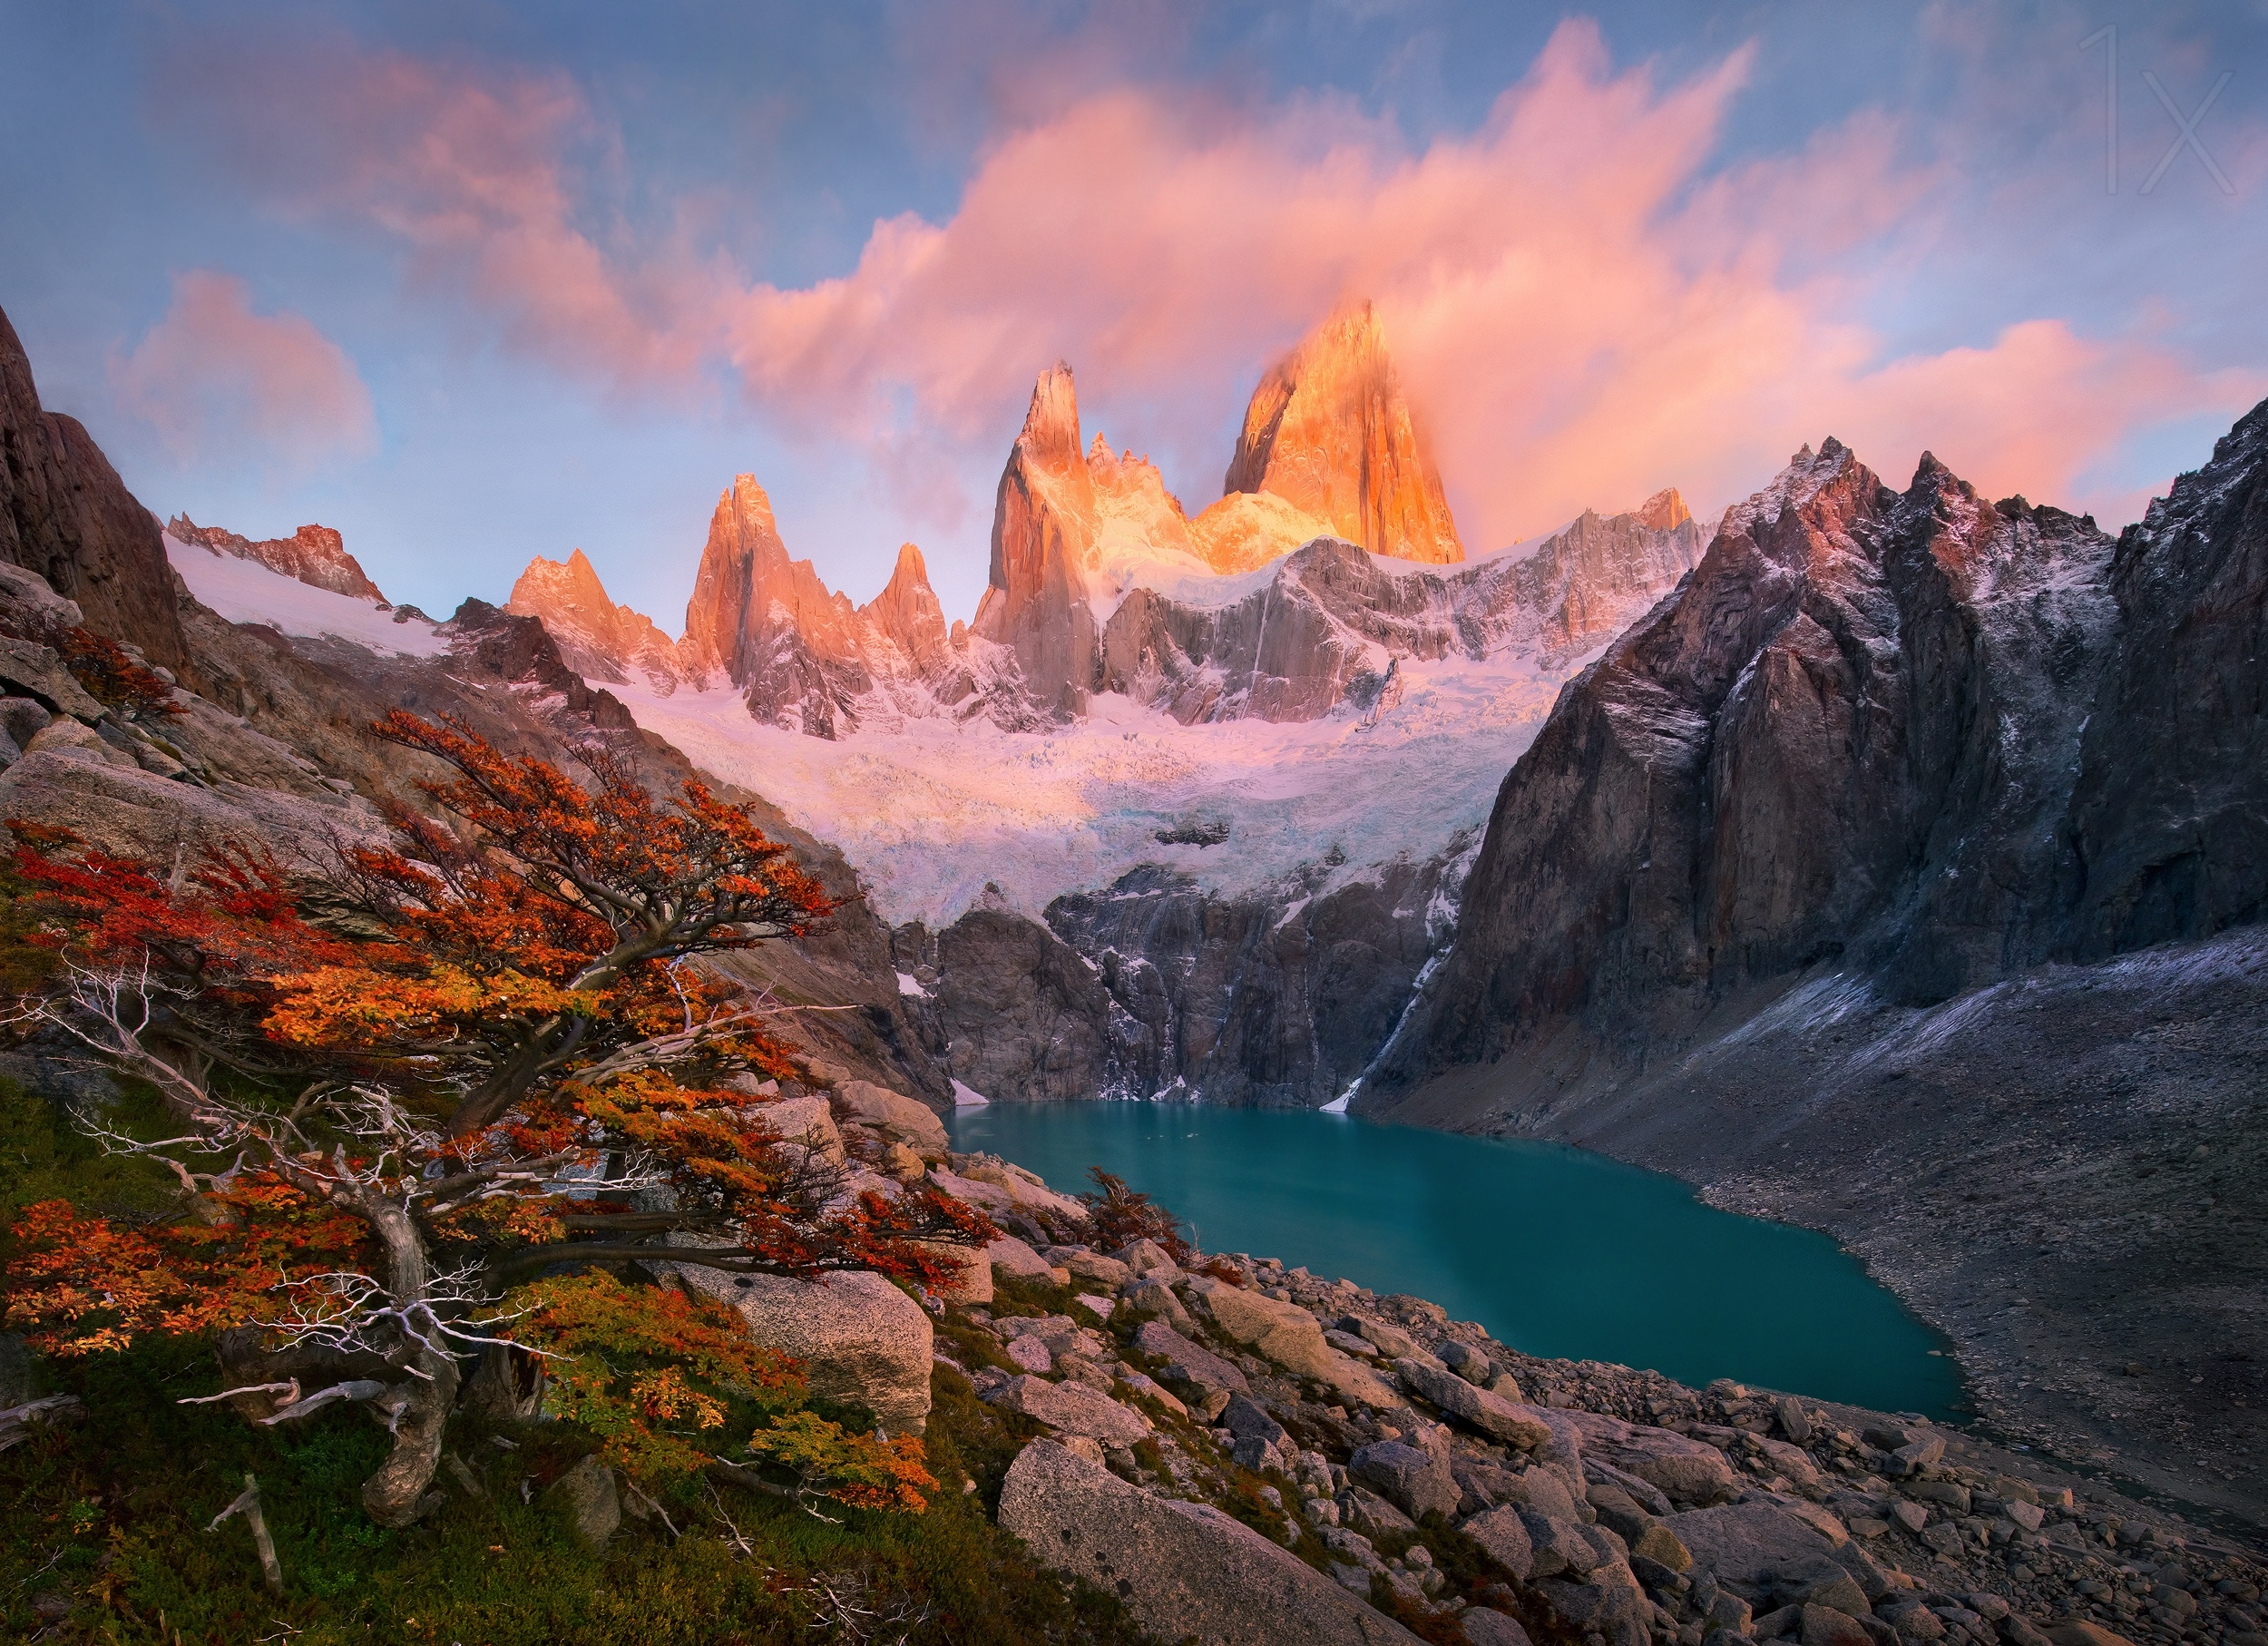 Patagonia South America >> Mount Fitz Roy, Patagonia- By Marc Adamus [2500x1814] : EarthPorn